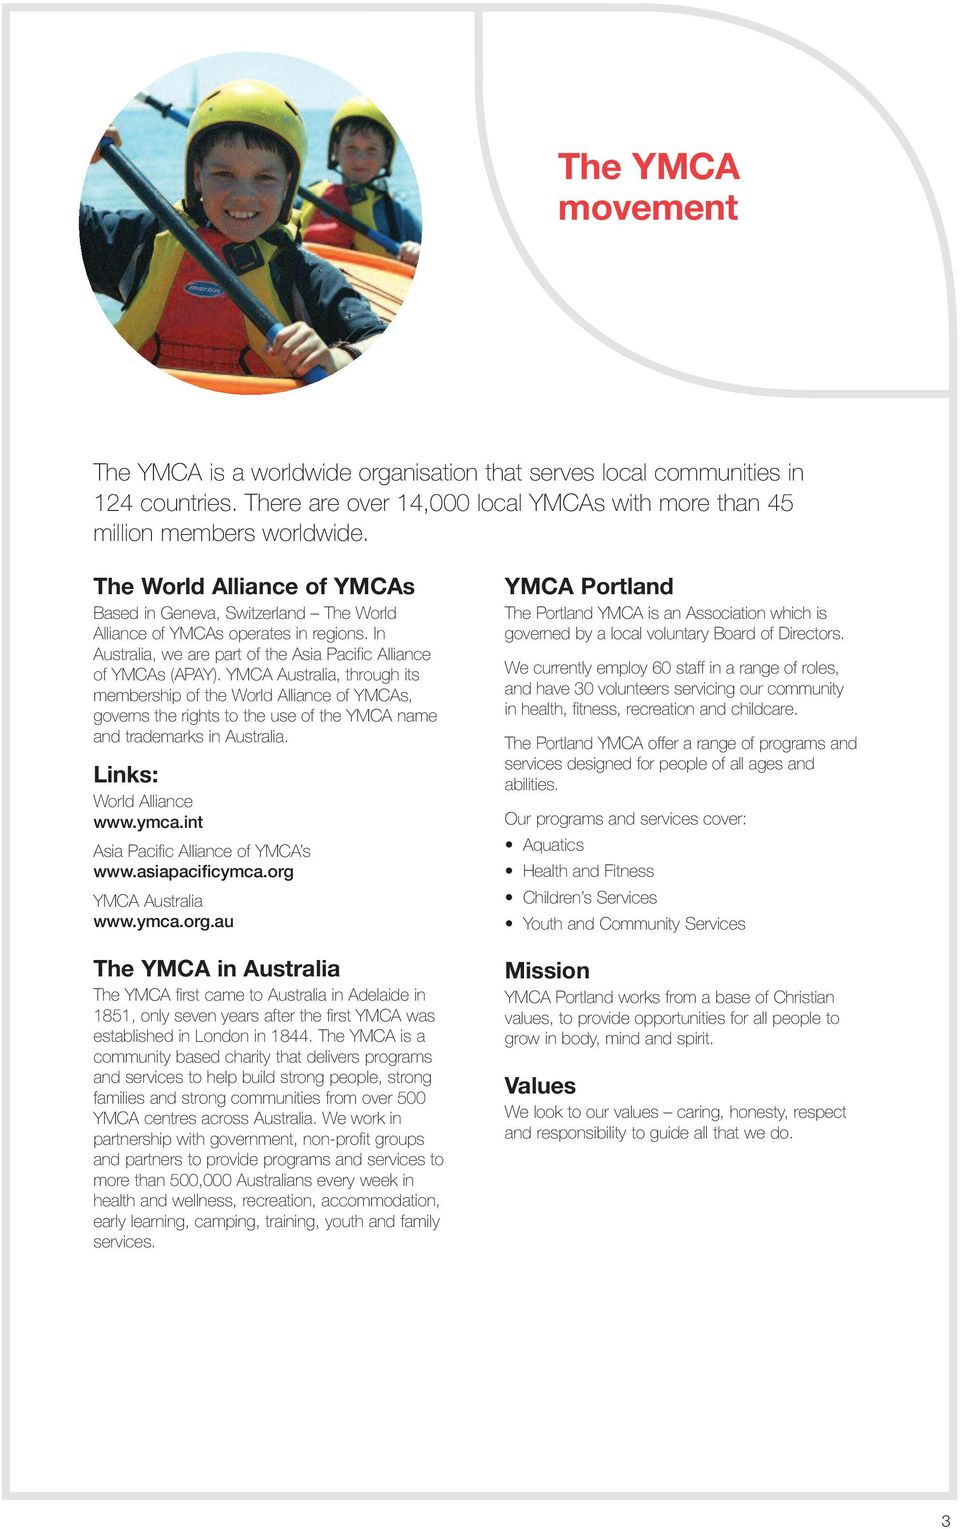 YMCA Australia, through its membership of the World Alliance of YMCAs, governs the rights to the use of the YMCA name and trademarks in Australia. Links: World Alliance www.ymca.